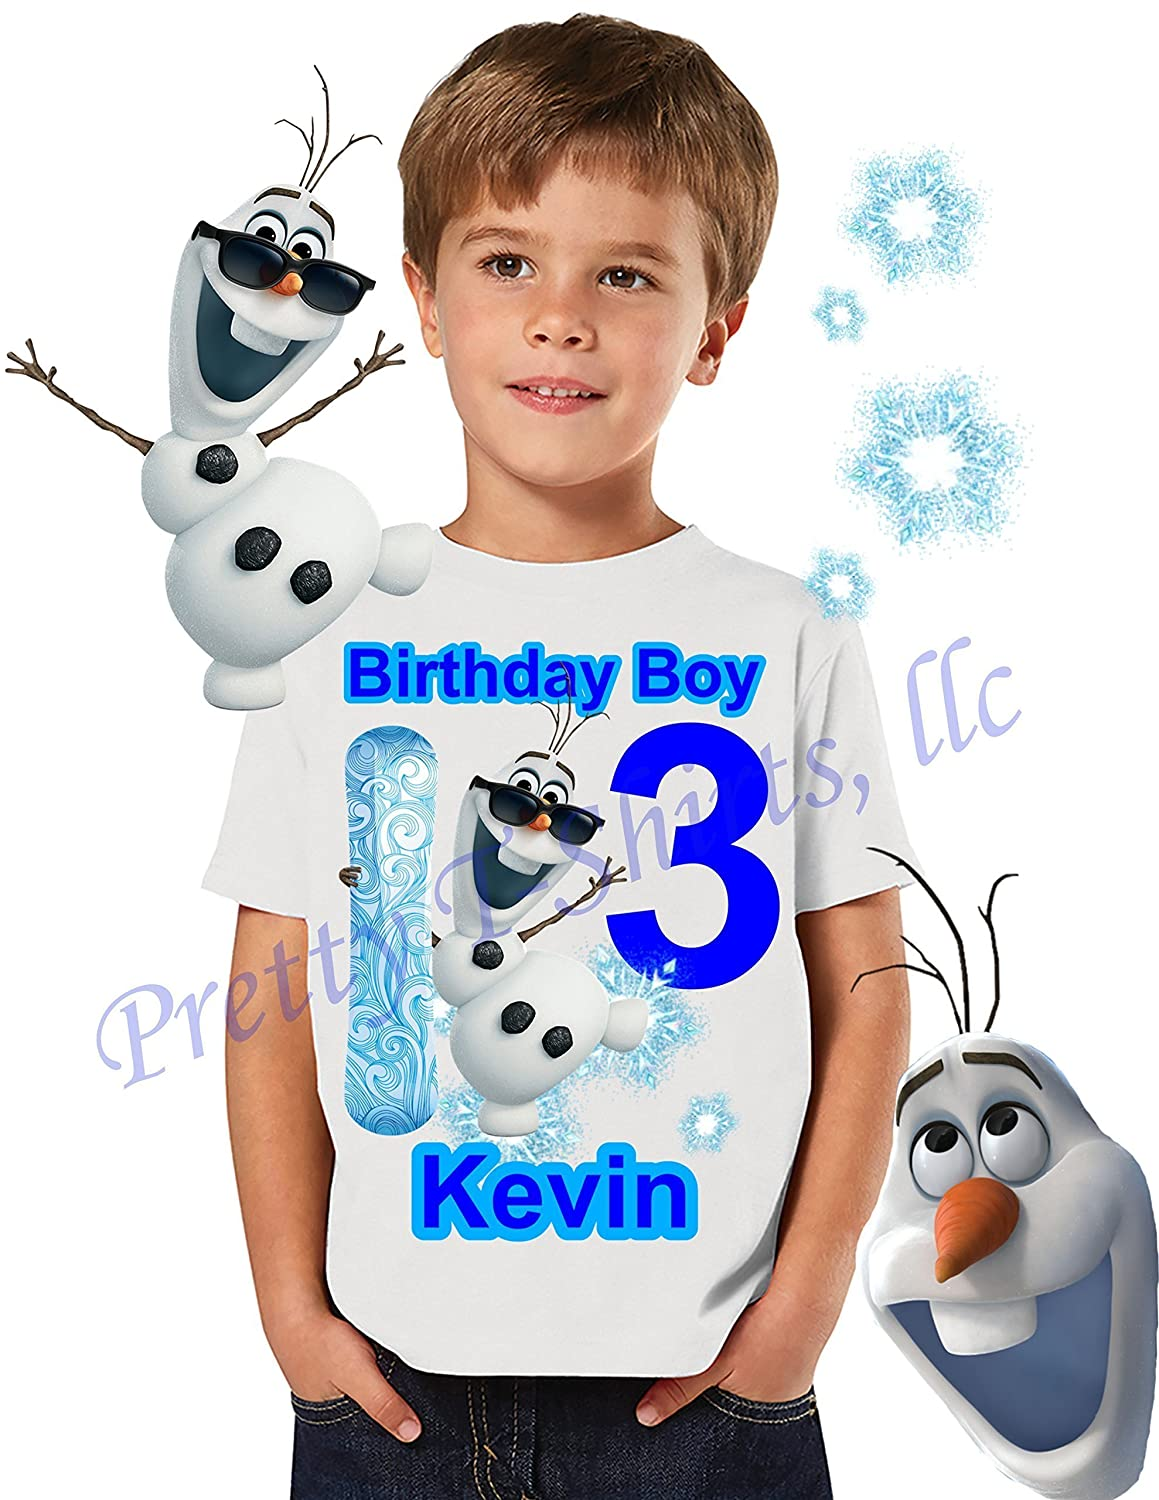 Frozen Birthday Shirt, Add ANY name and ANY age, Frozen Birthday BOY Shirt, Birthday Shirt Party Favor, OLAF Birthday Shirt, Birthday BOY Shirt, Boy Frozen Shirt, Frozen, Olaf, VISIT OUR SHOP!!